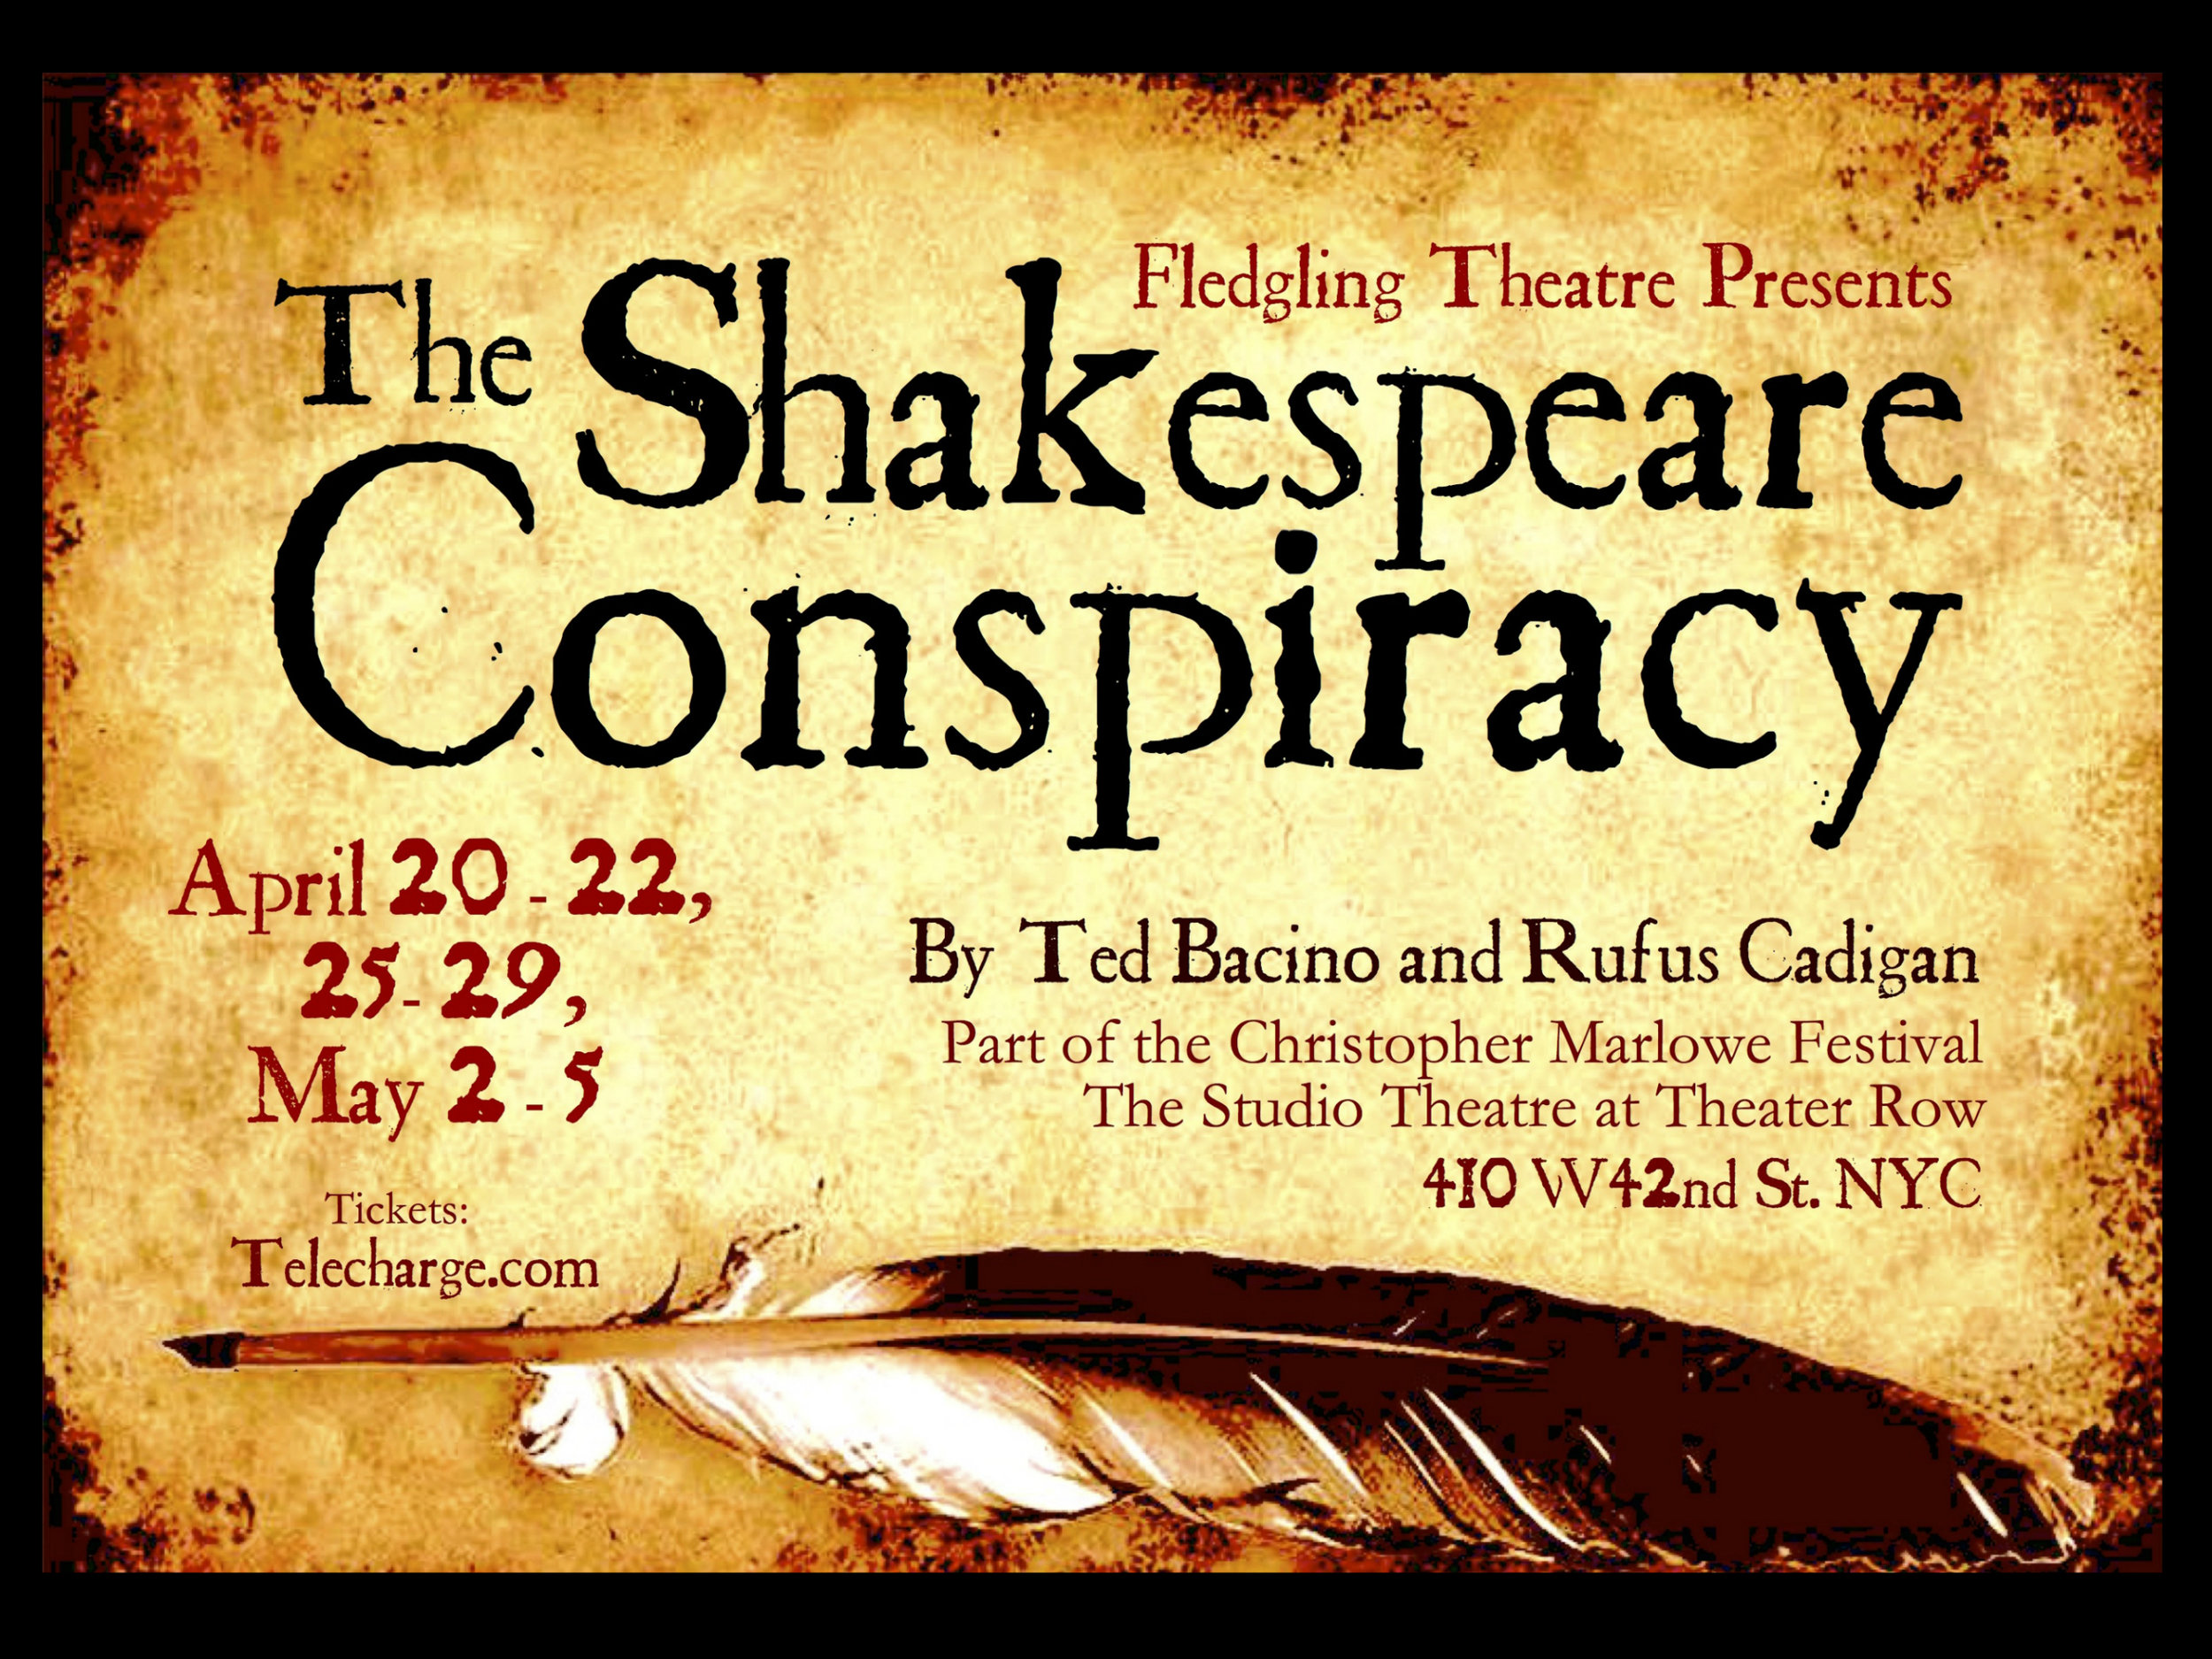 Skakespeare Conspiracy Flyer FRONT (1).jpg